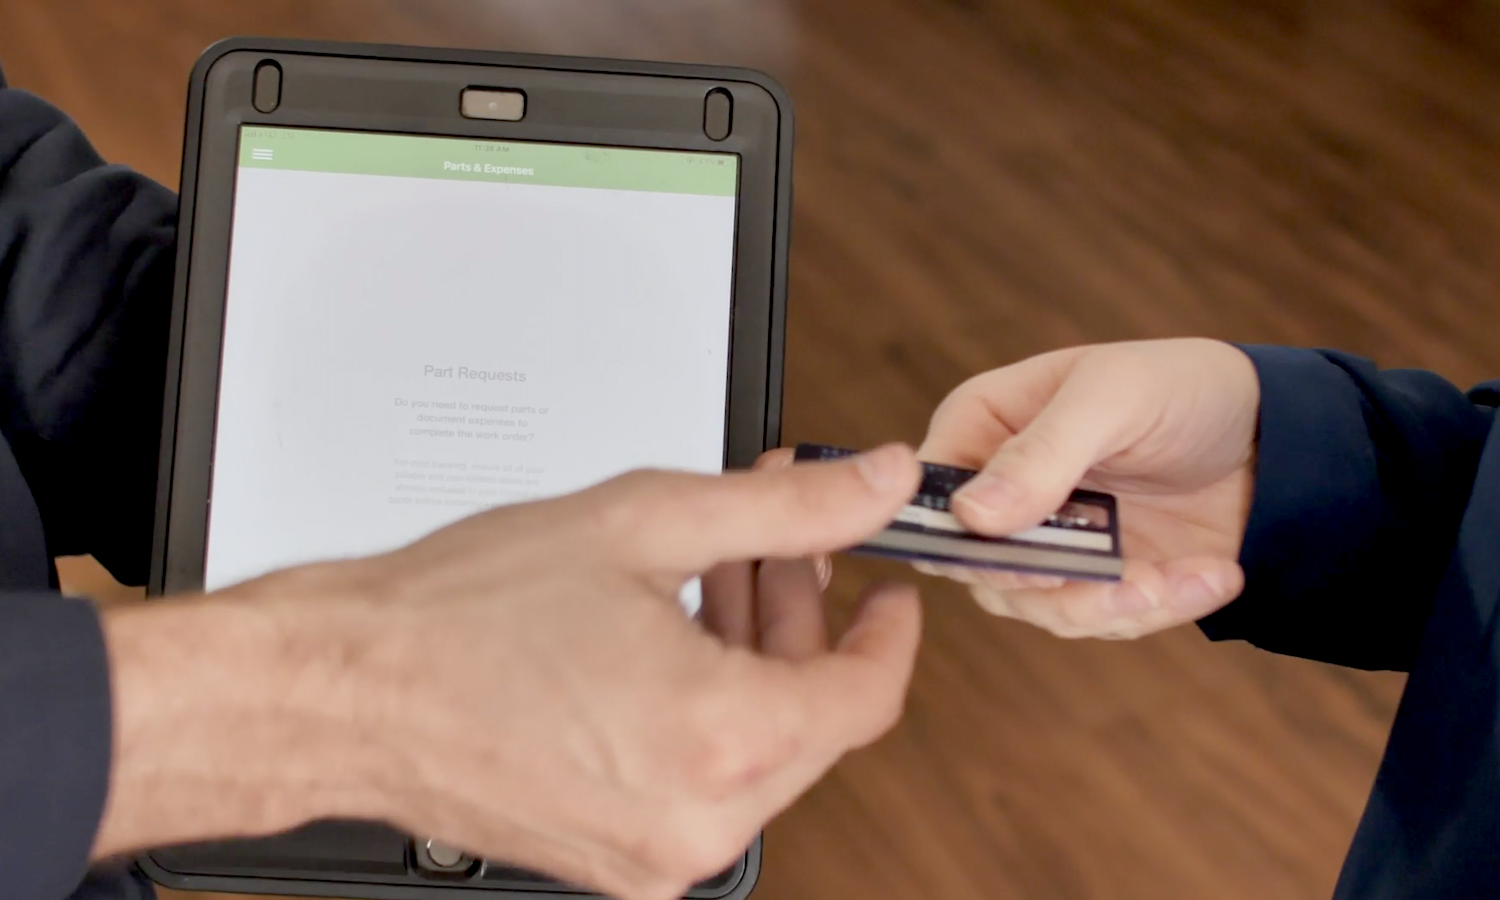 Scene from Kemco Services testimonial video showing customer paying with card on tablet with FieldEdge.